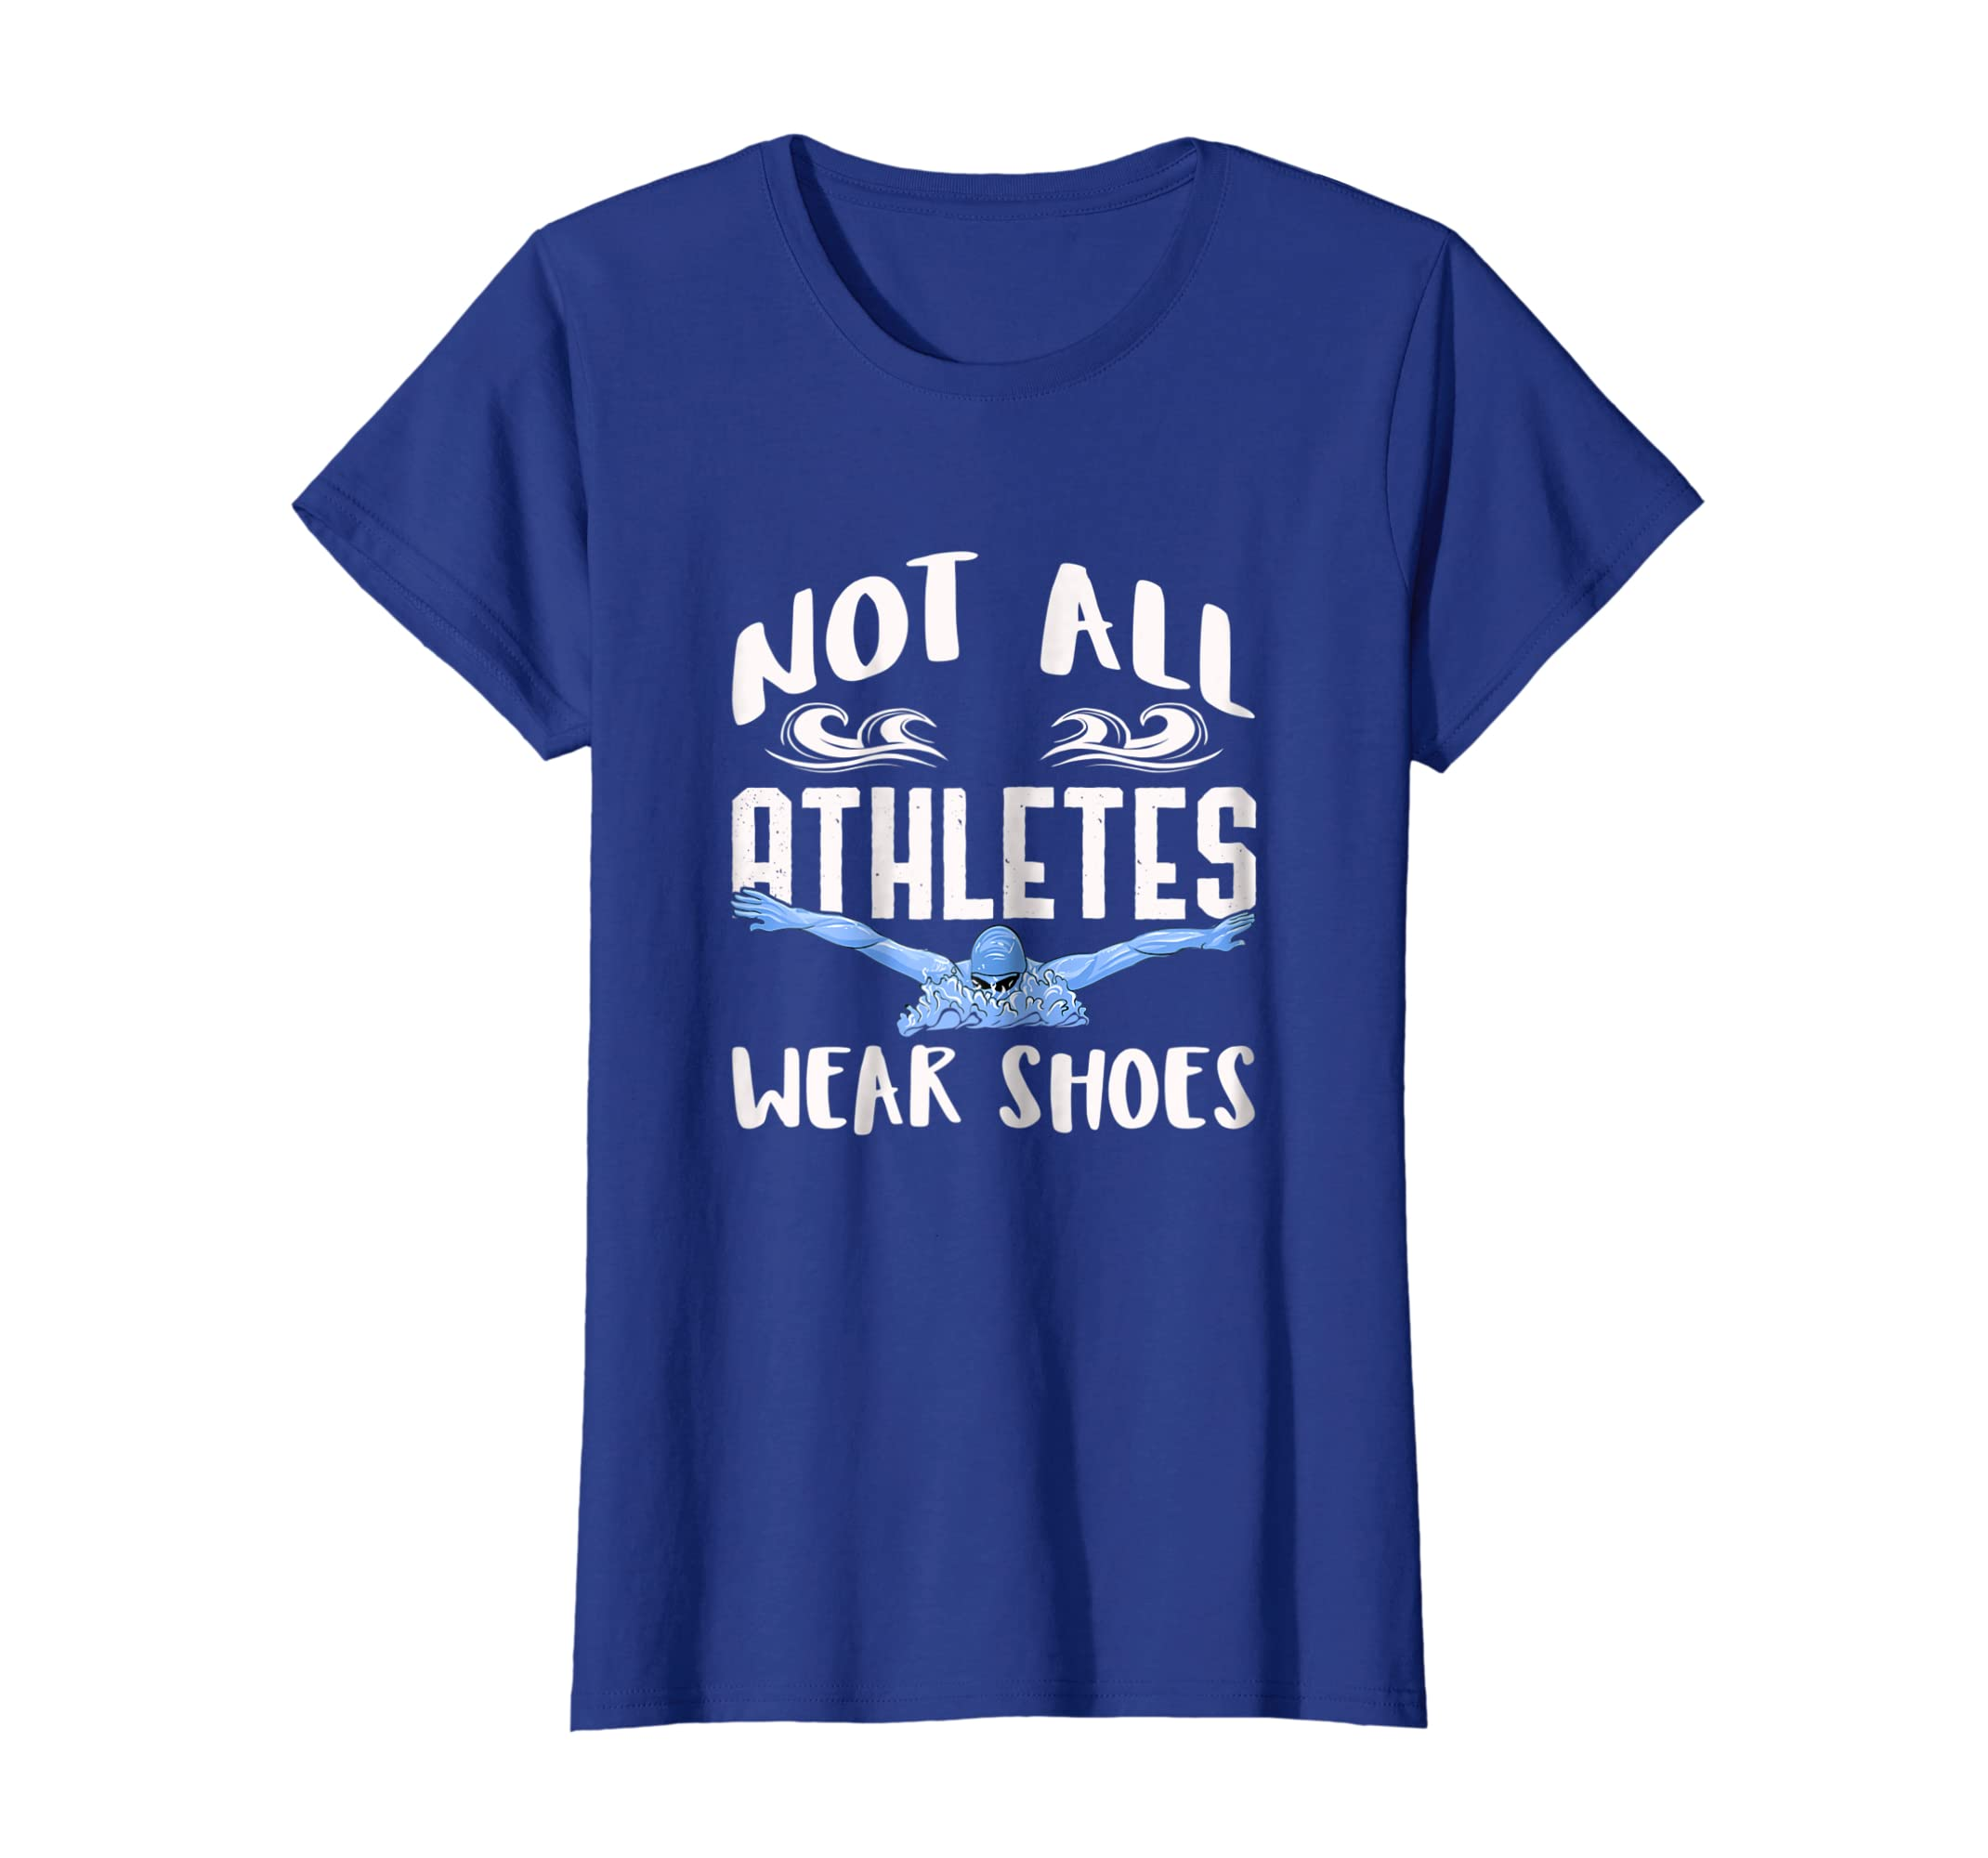 Amazon.com: Swimmers Not All Athletes Wear Shoes T-Shirt ...